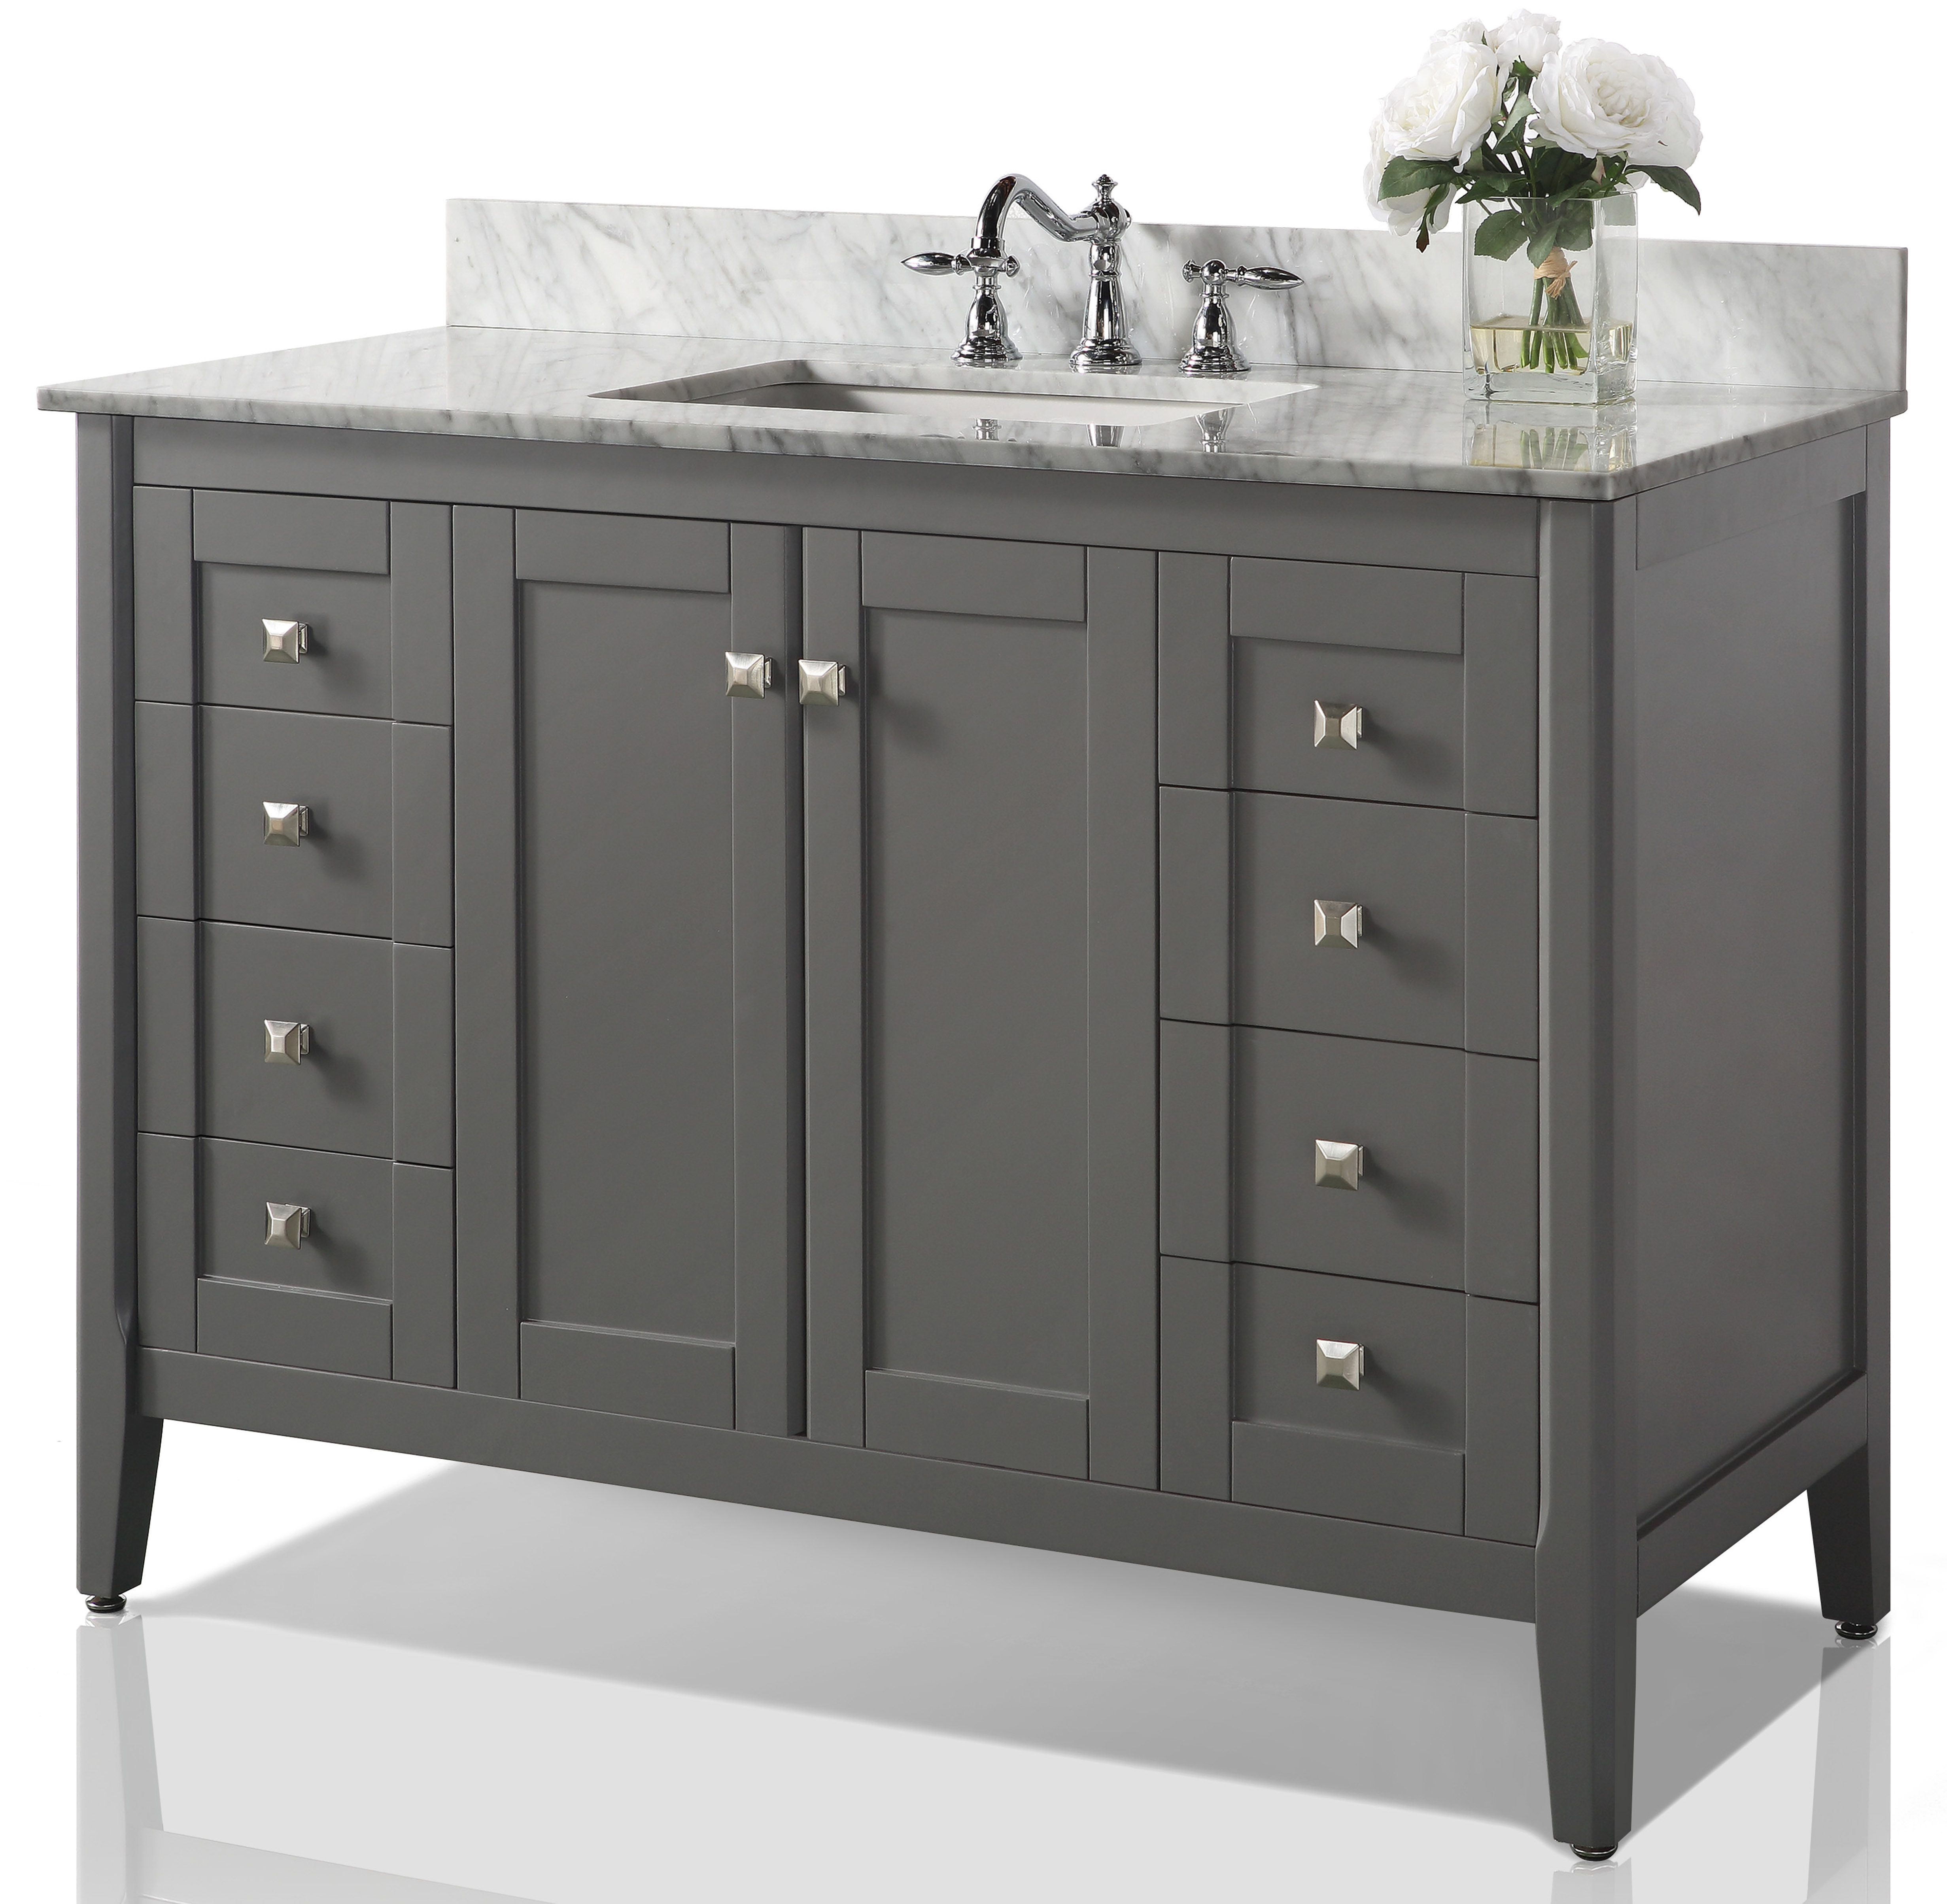 "48"" Bath Vanity Set in Sapphire Gray Finish with Italian Carrara White Marble Vanity top and White Undermount Basin"